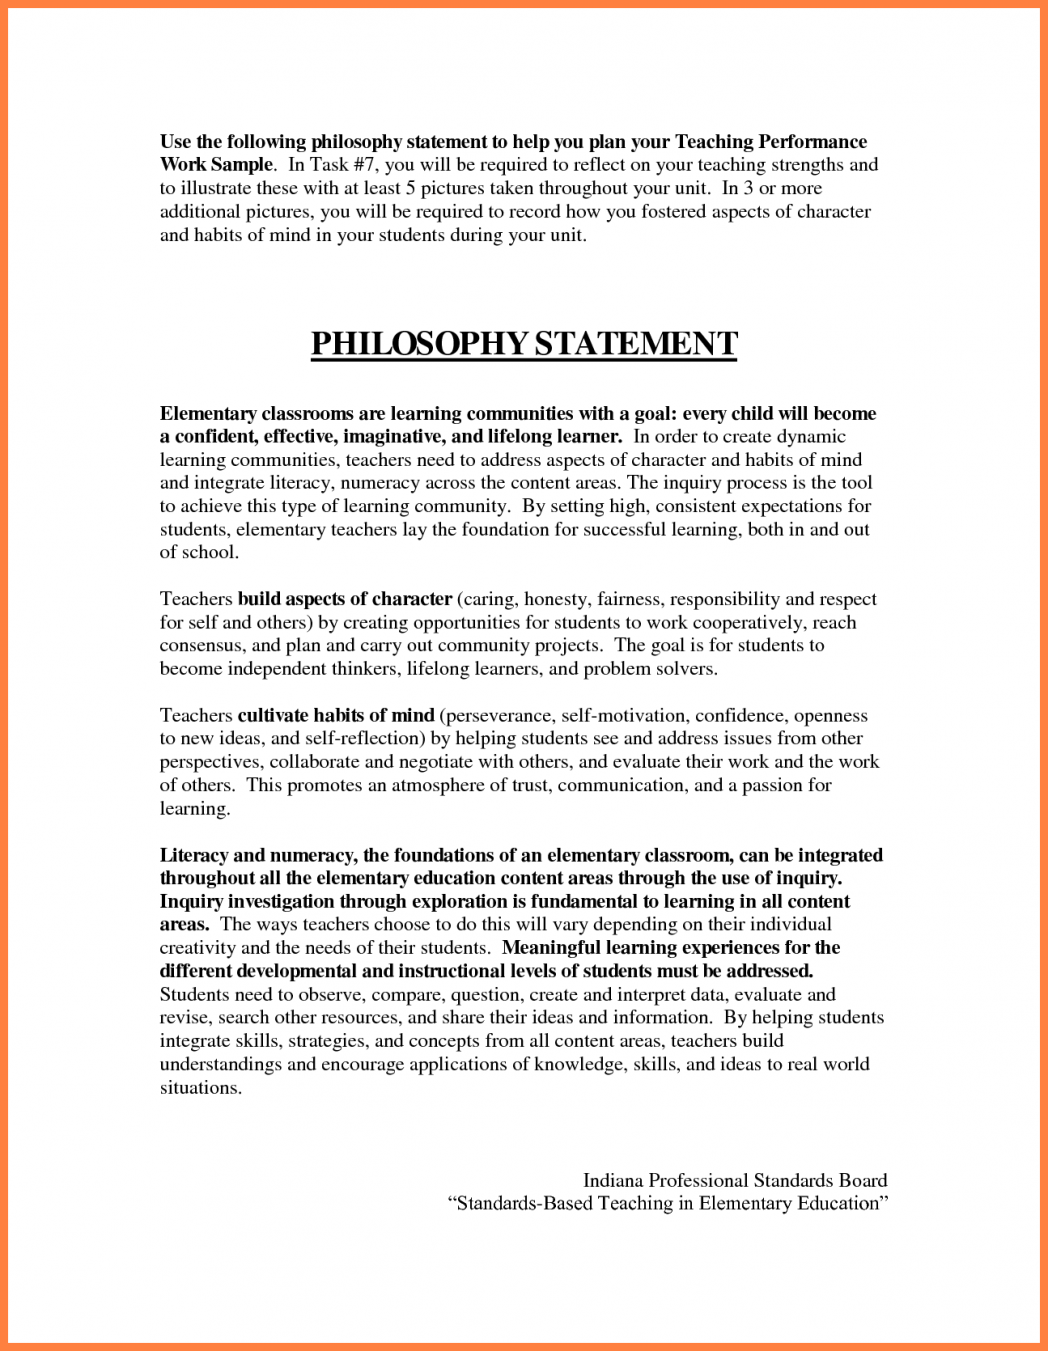 013 Essay Exampleaching Philosophy Statement Coursework Academic Writing Of Early Childhood Education Essays Self Reflection On My Personal 1048x1351 Why I Want To An Exceptional Be Teacher A Preschool Full